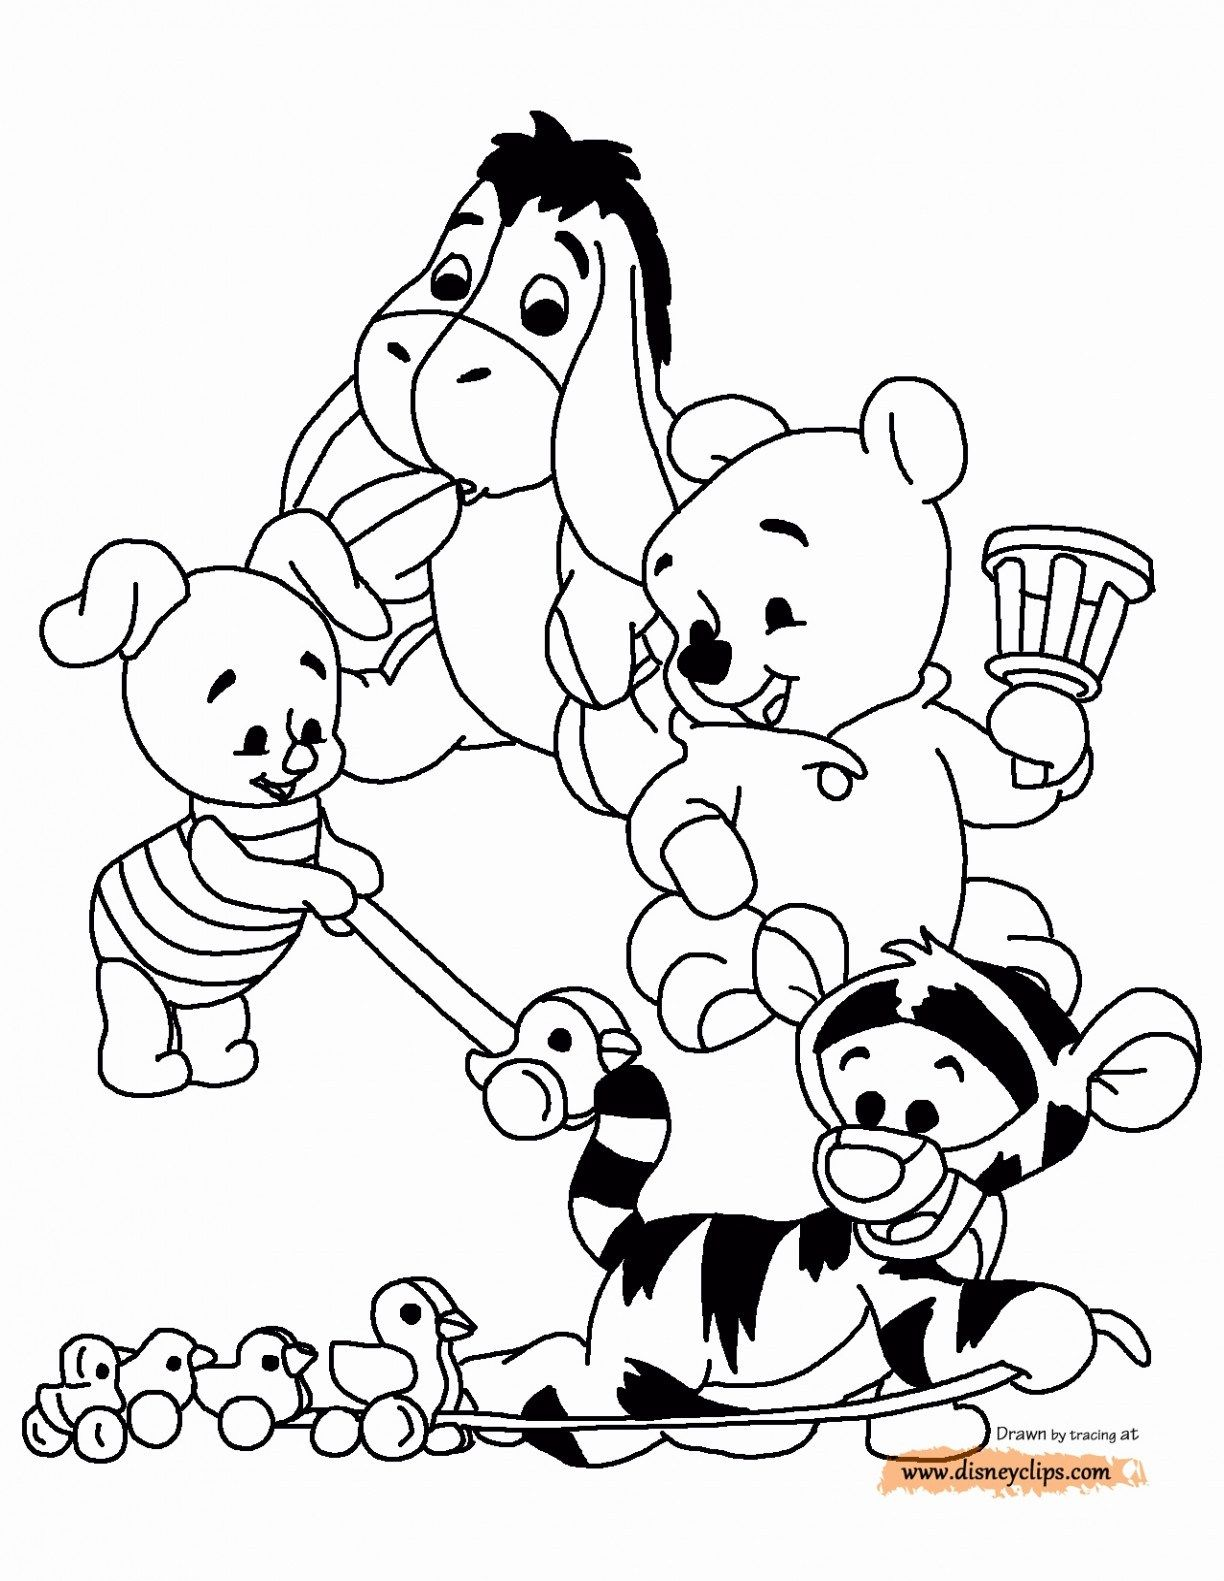 Inspiration Photo Of Tigger Coloring Pages Davemelillo Com Baby Coloring Pages Disney Coloring Pages Cute Winnie The Pooh